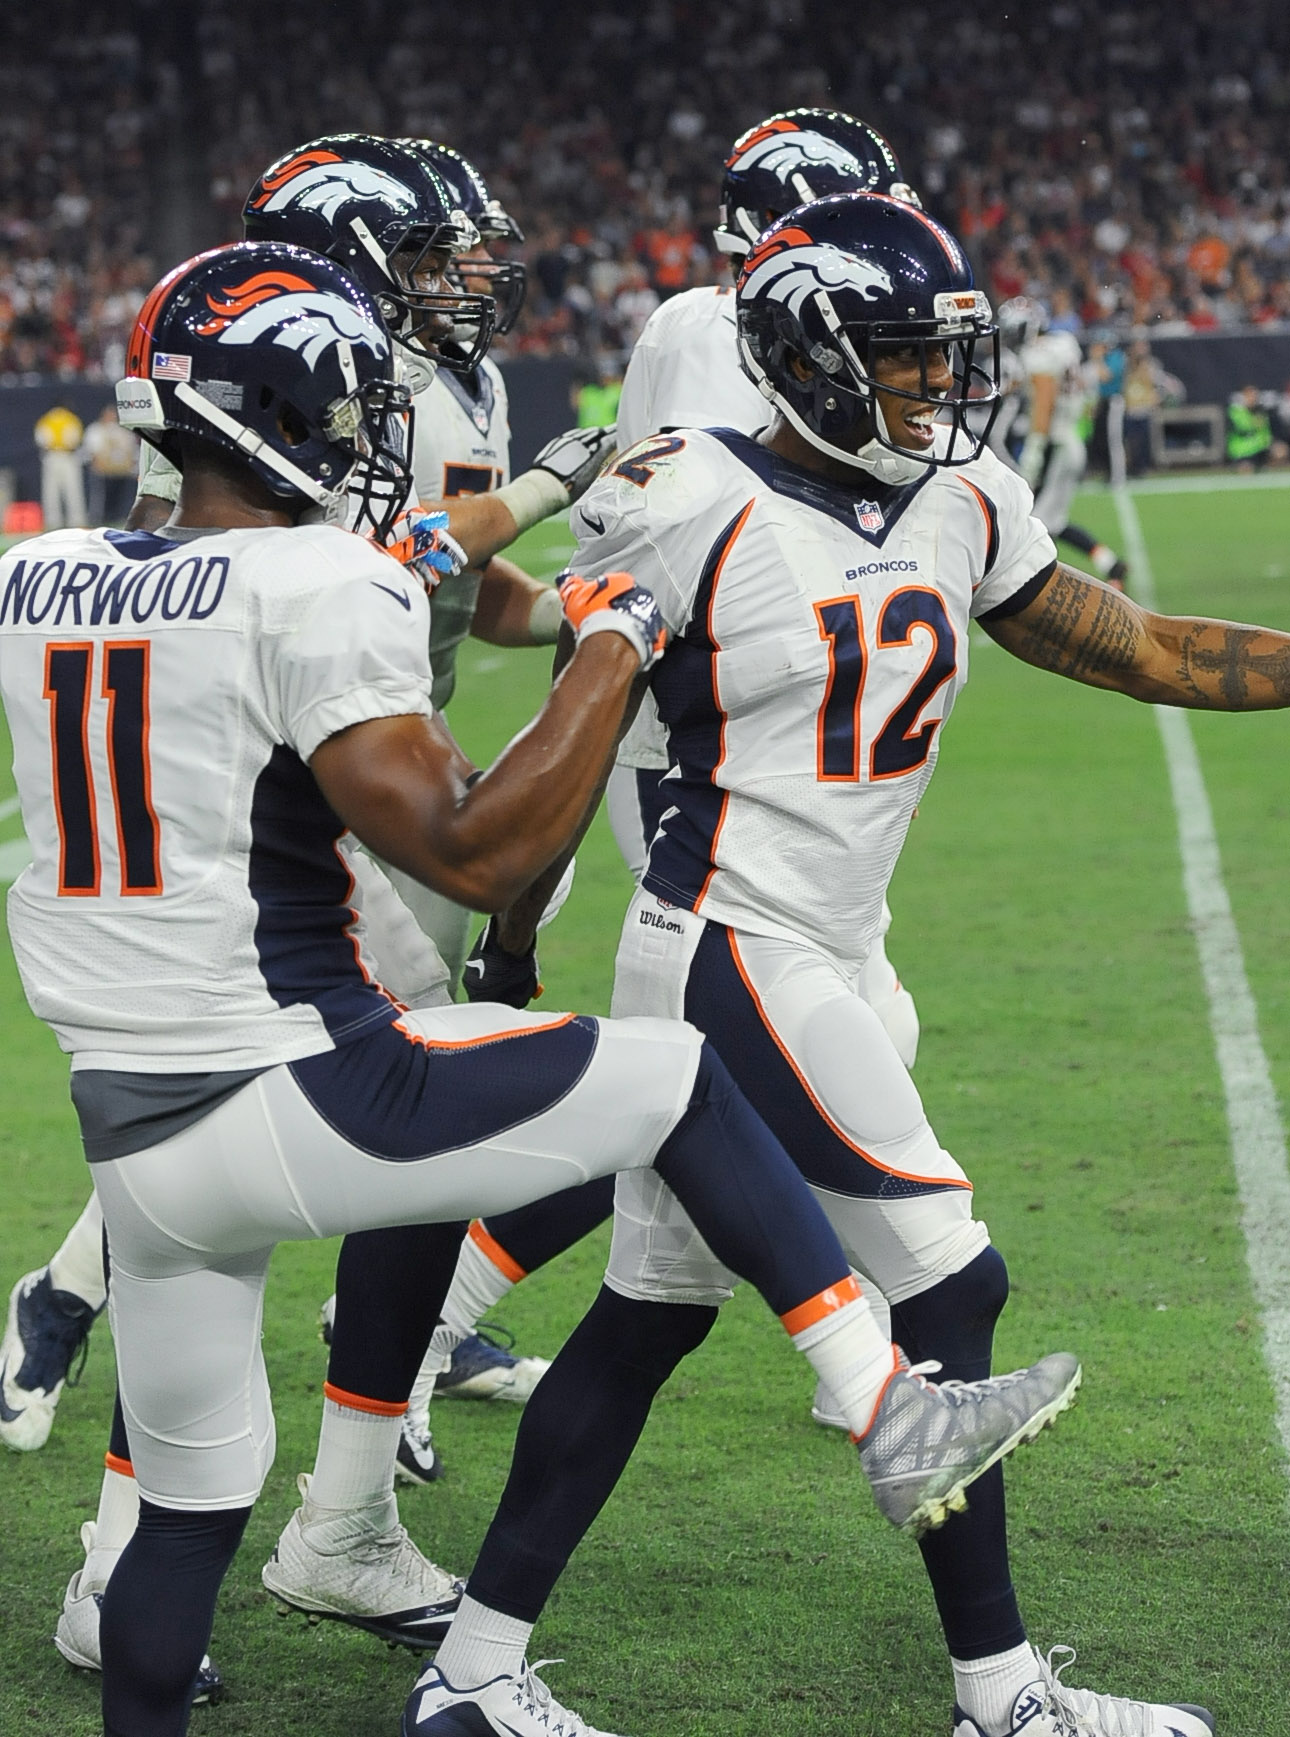 Denver Broncos' Andre Caldwell (12) celebrates with teammates after he scored a touchdown against the Houston Texans during the first half of an NFL preseason football game, Saturday, Aug. 22, 2015, in Houston. (AP Photo/George Bridges)